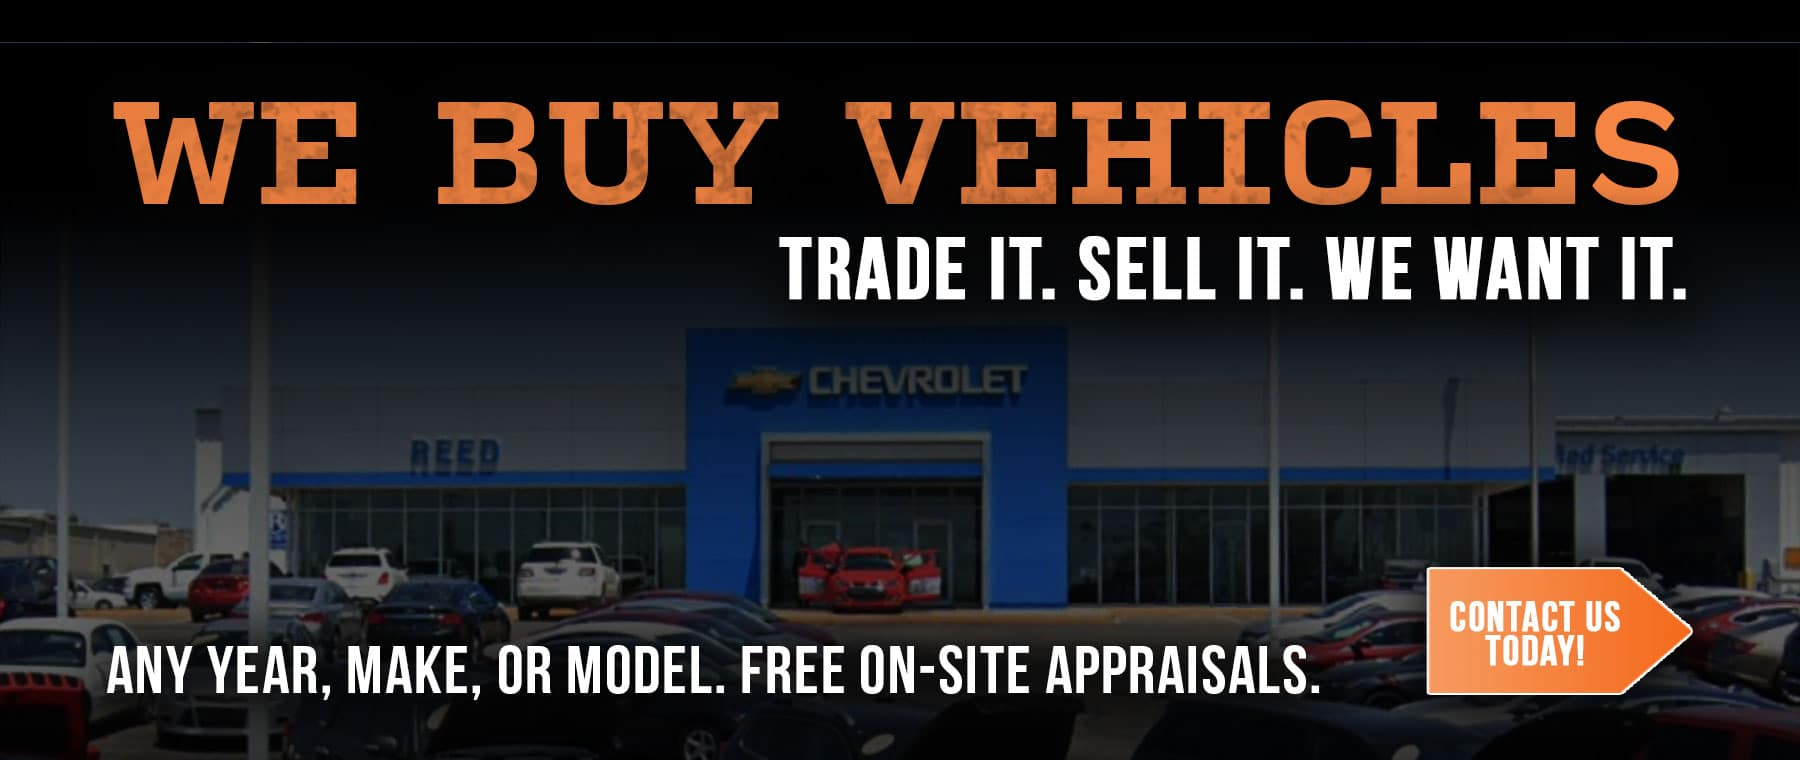 Reed Chevy Trade